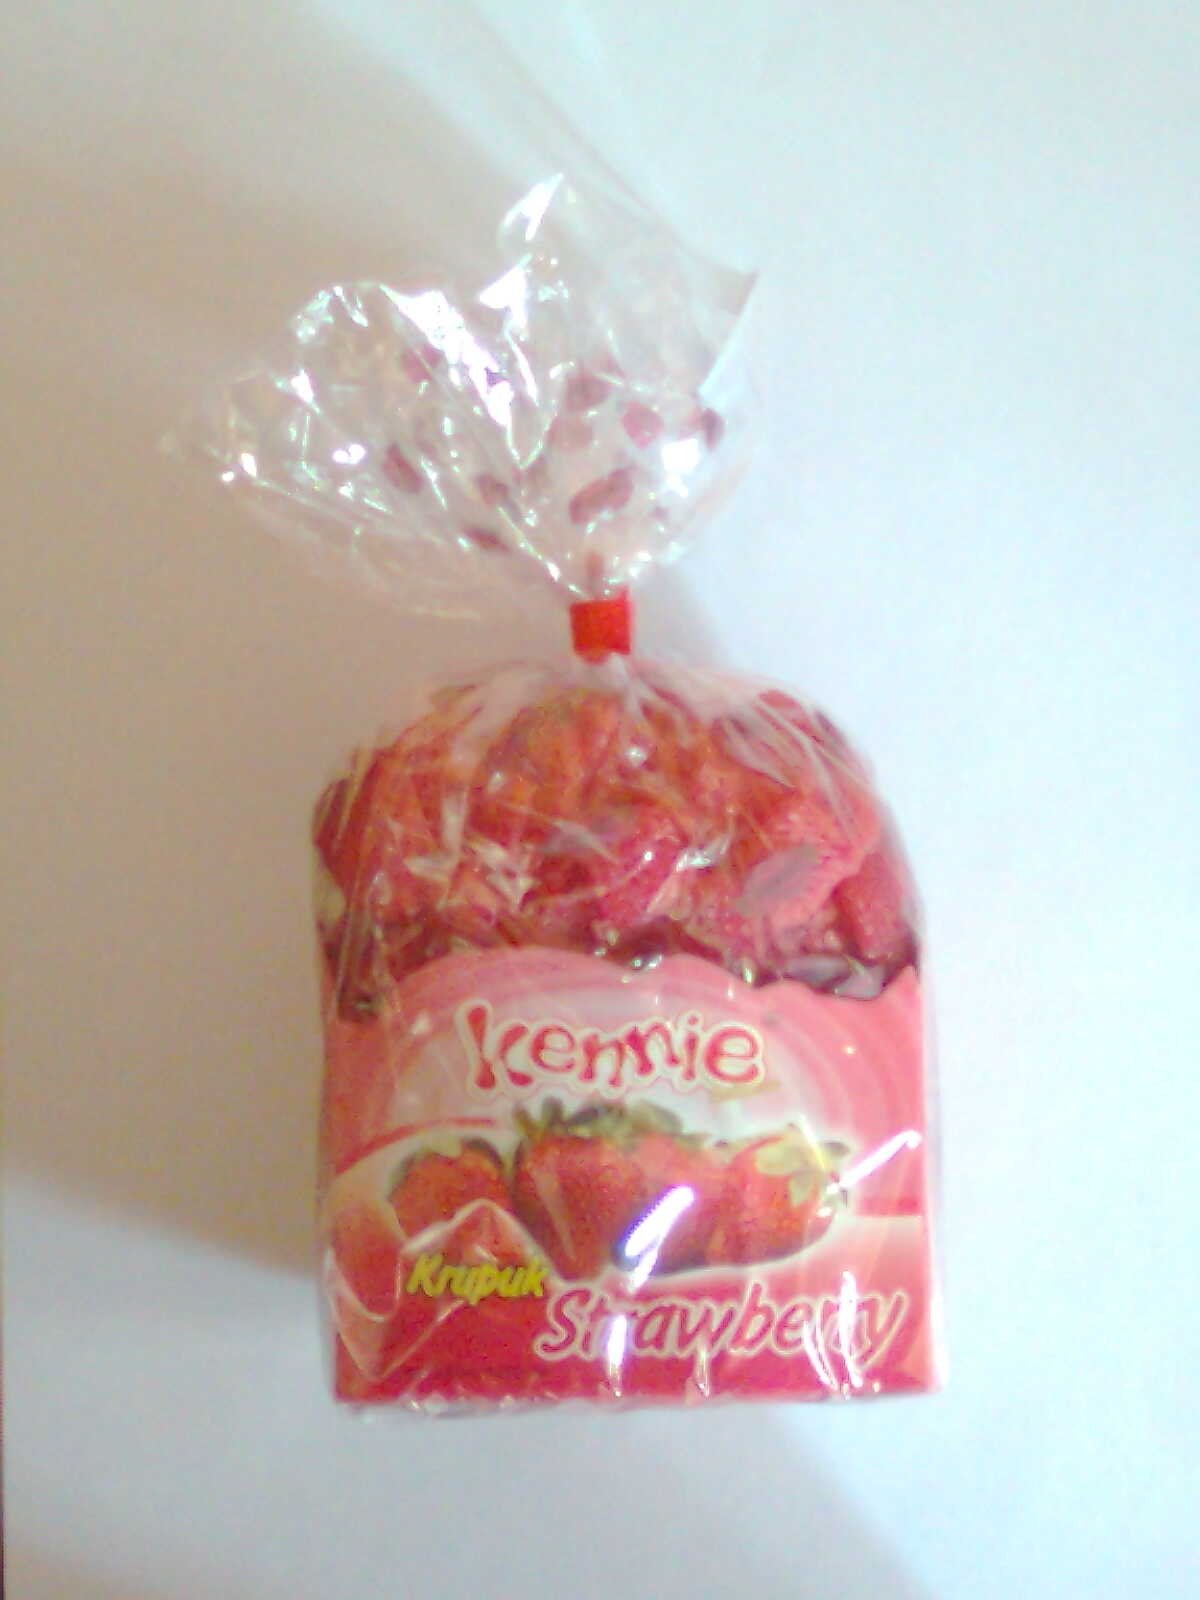 KENNIE CRACKERS STRAWBERRY